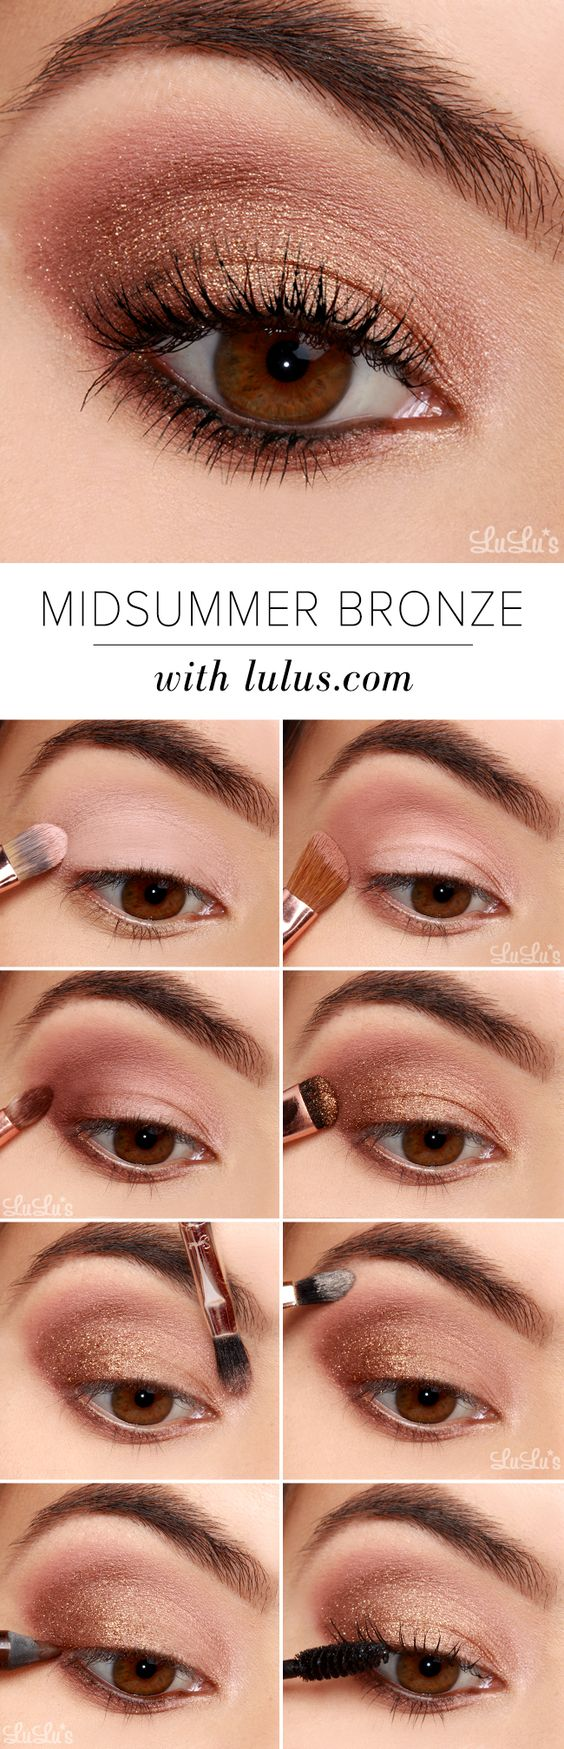 bronze-eye-makeup via